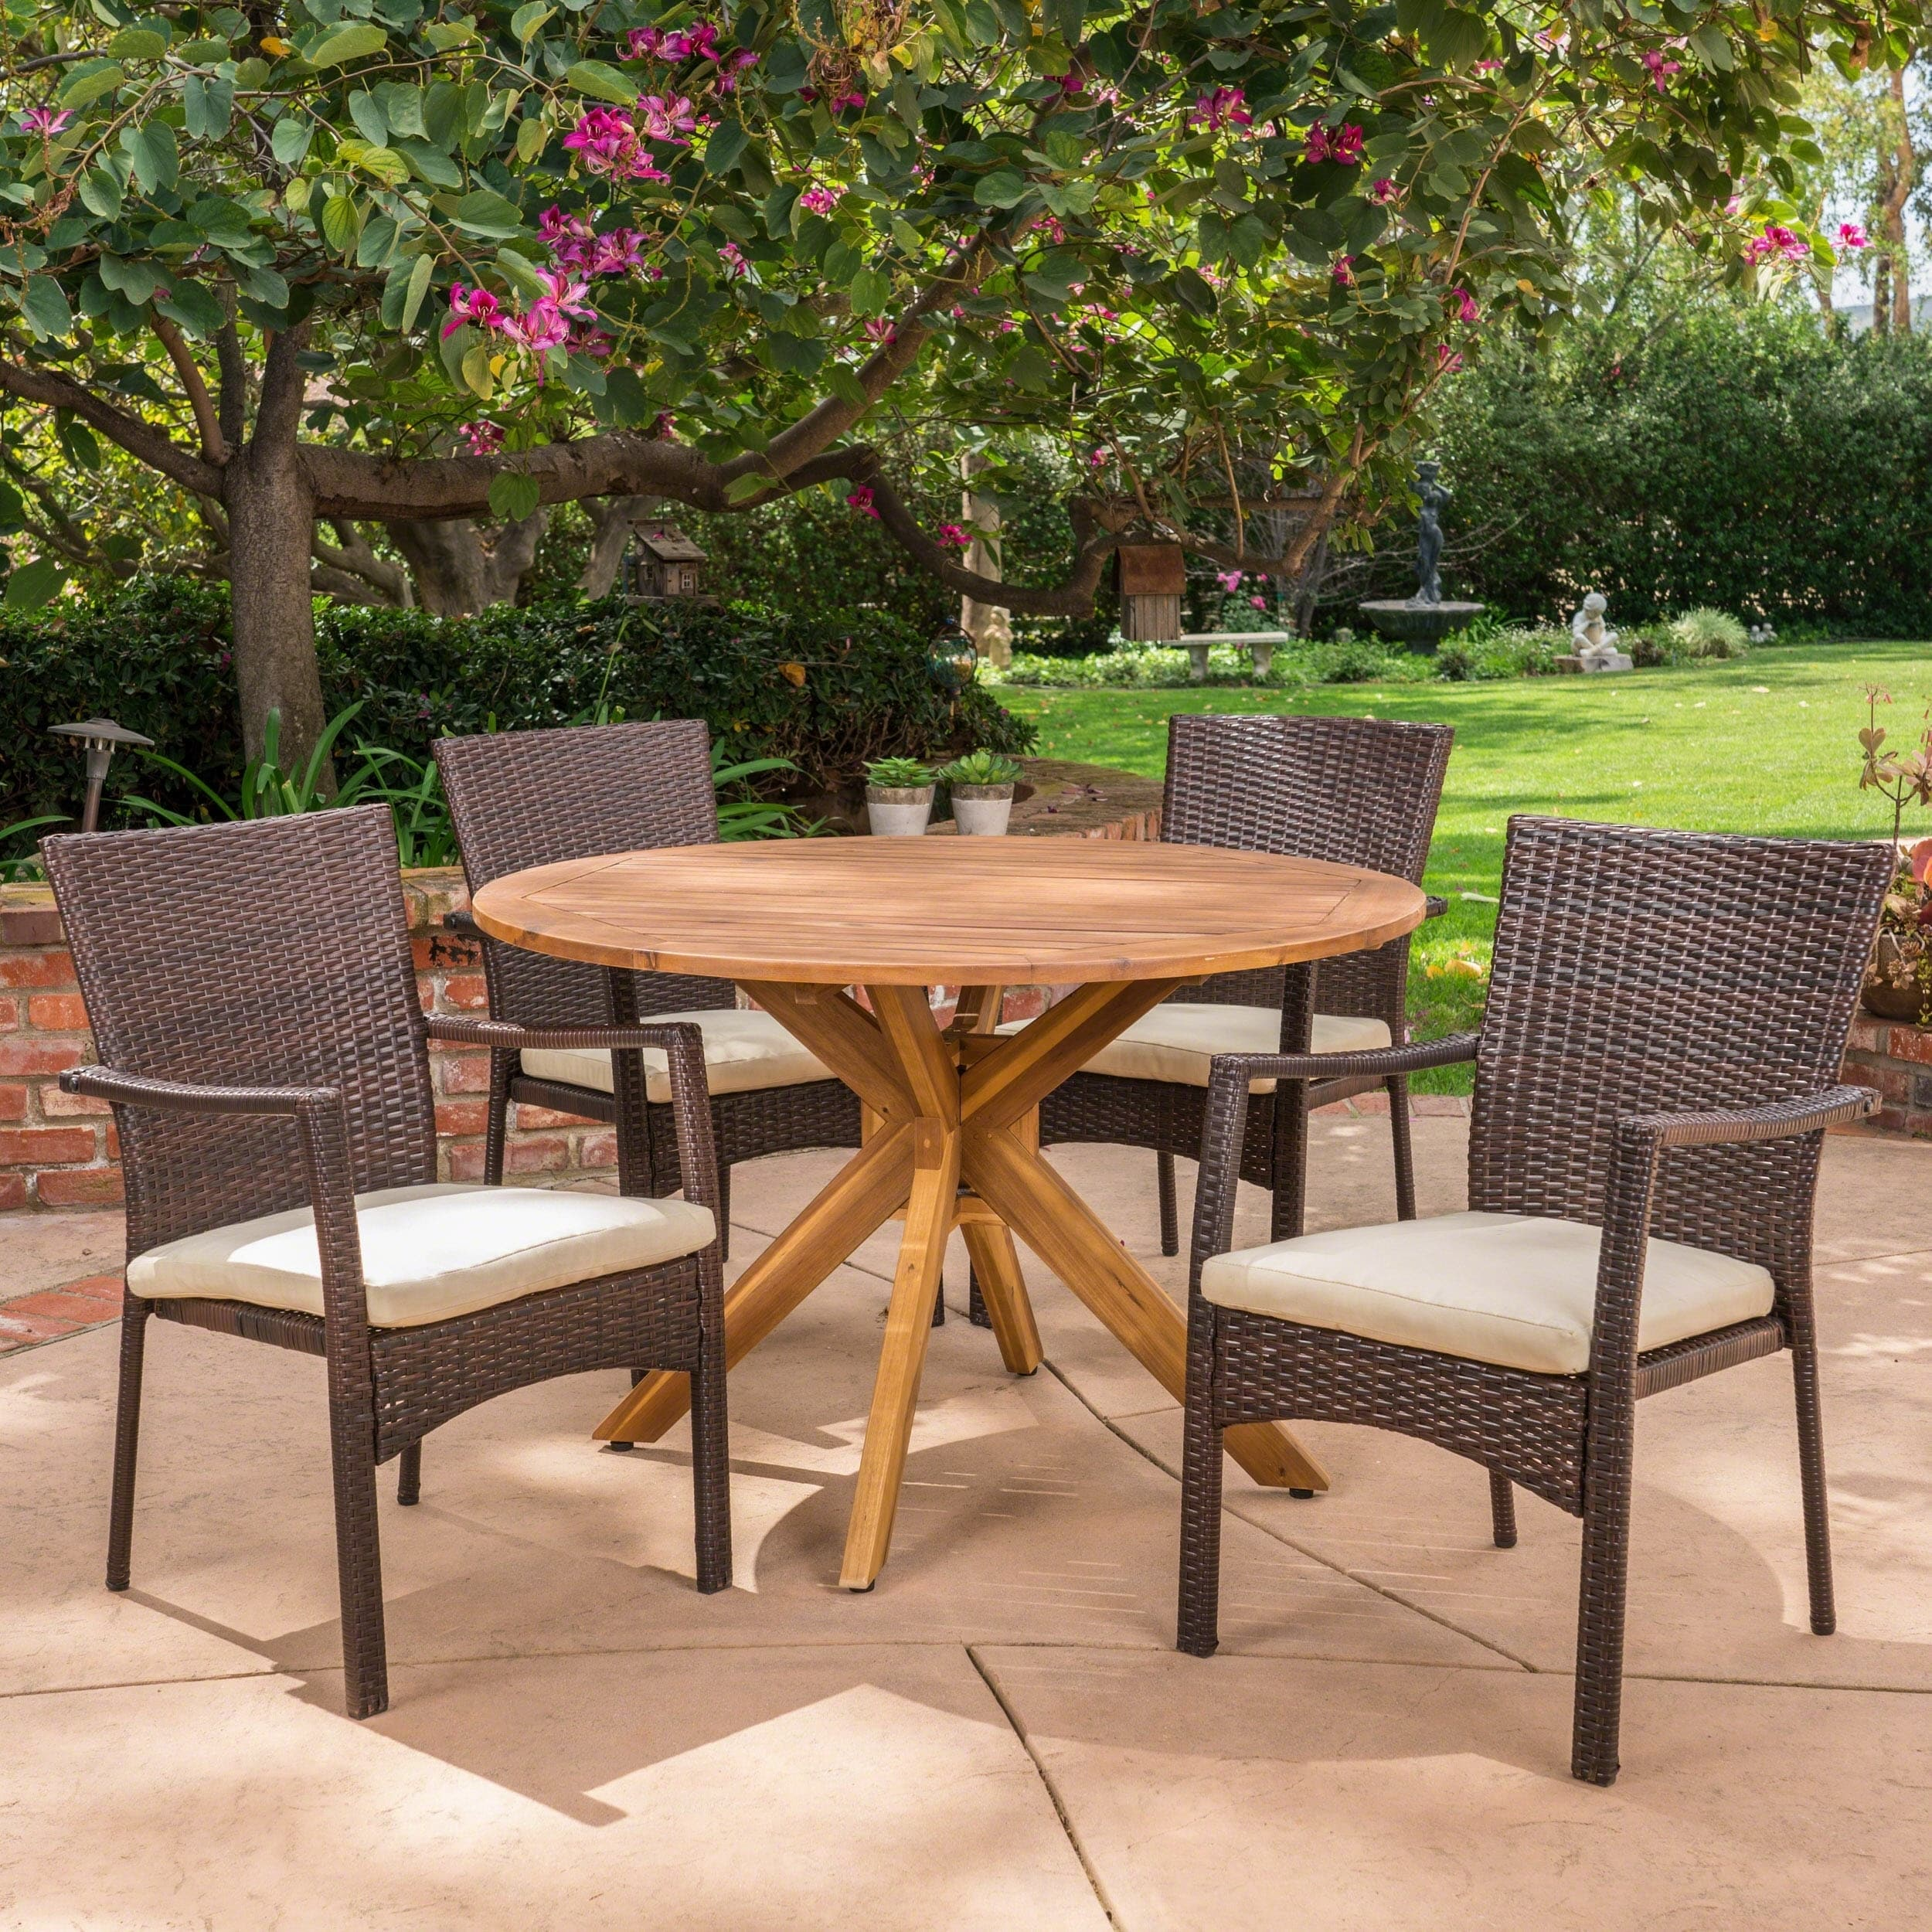 Shop Stamford Outdoor 5 Piece PE Wicker Dining Set with Circular ...